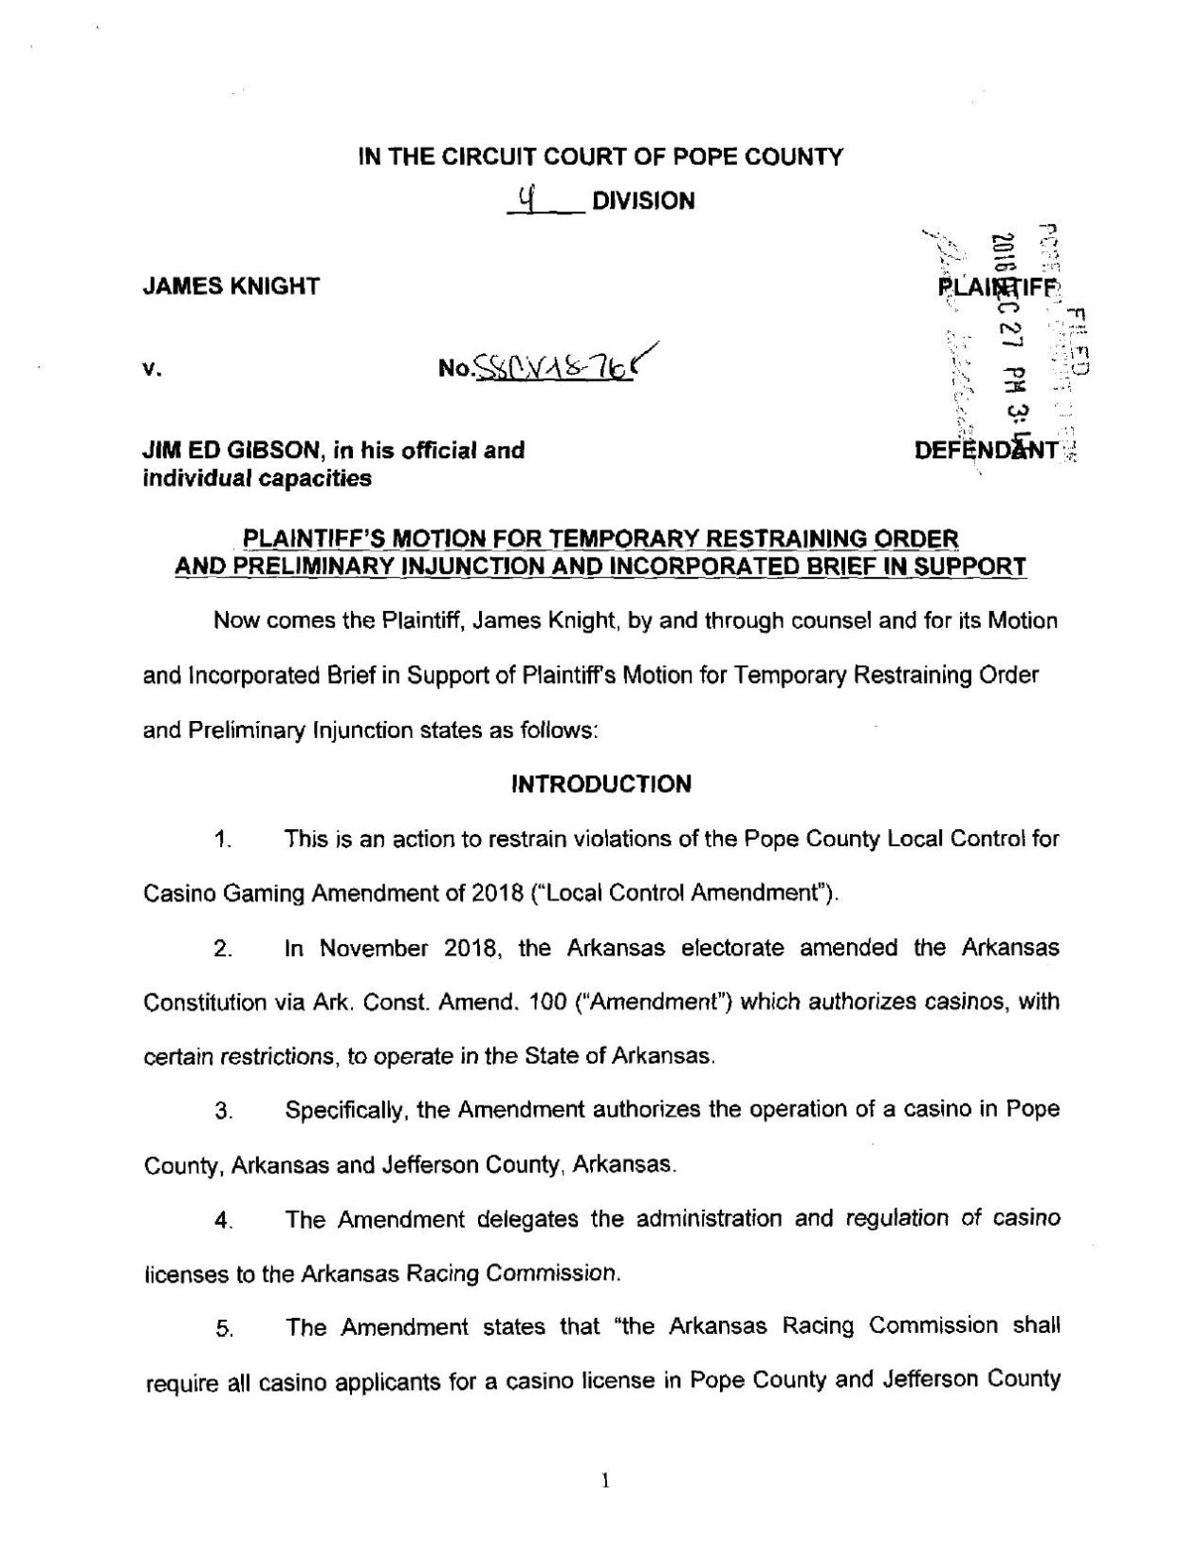 Pope County: Filed Motion for TRO